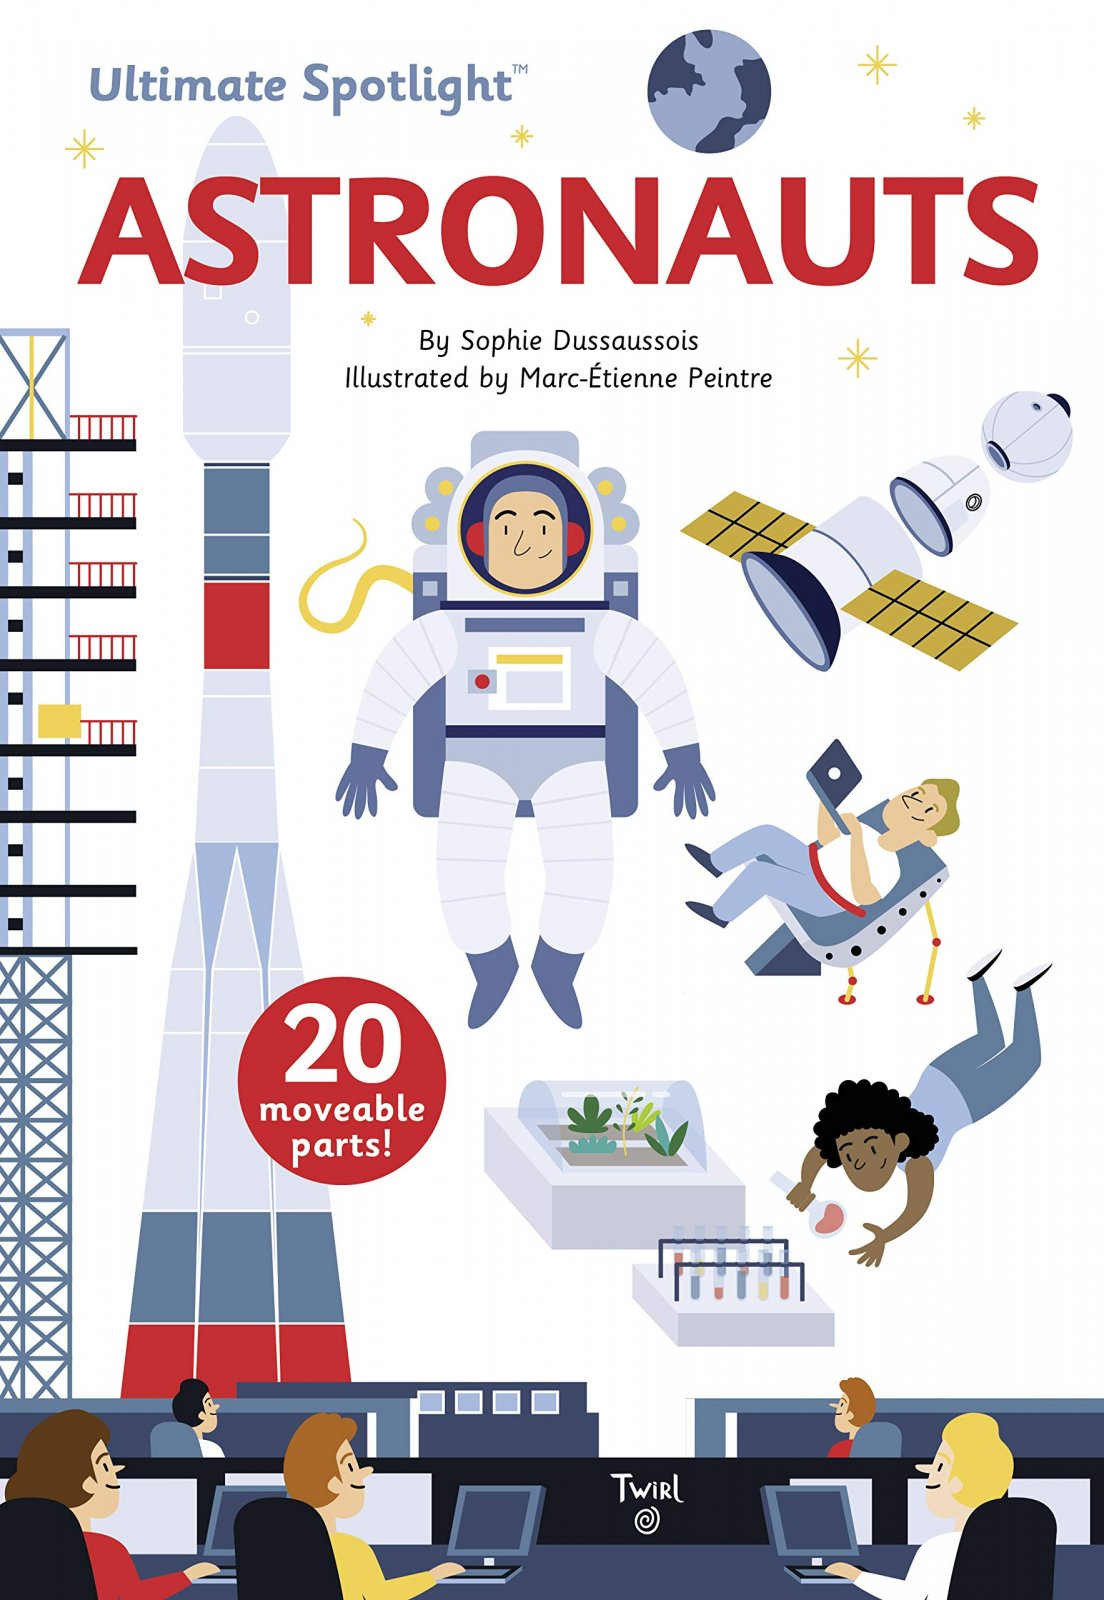 Ultimate Spotlight - Astronauts by Sophie Dussaussois